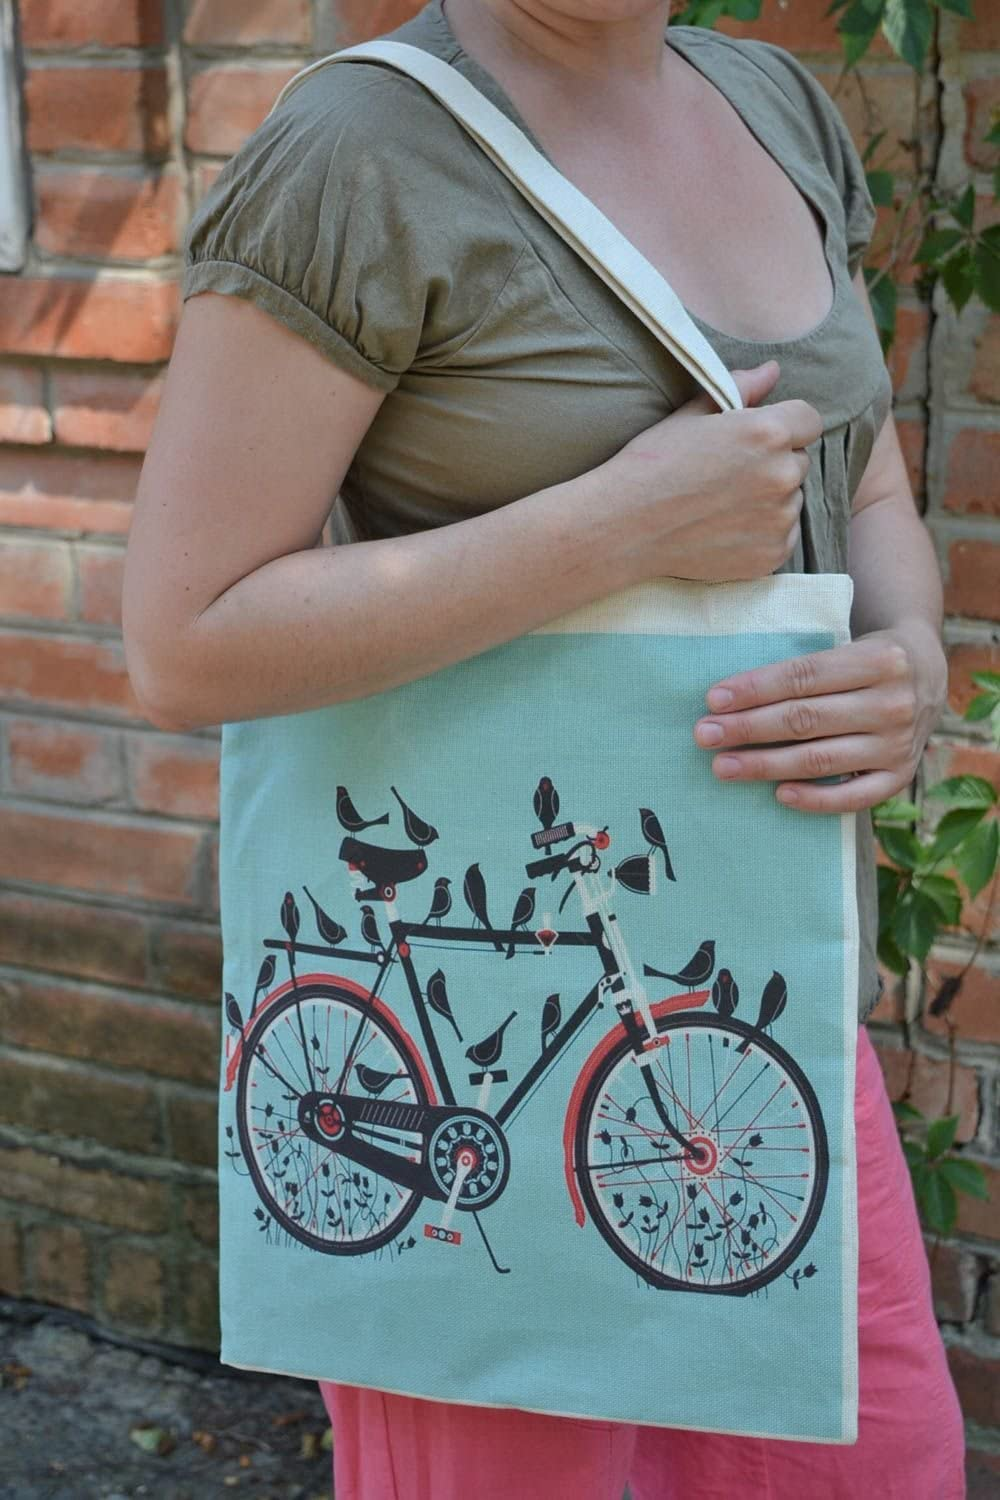 Handmade designer fabric women s bag with two handles and image of bicycle